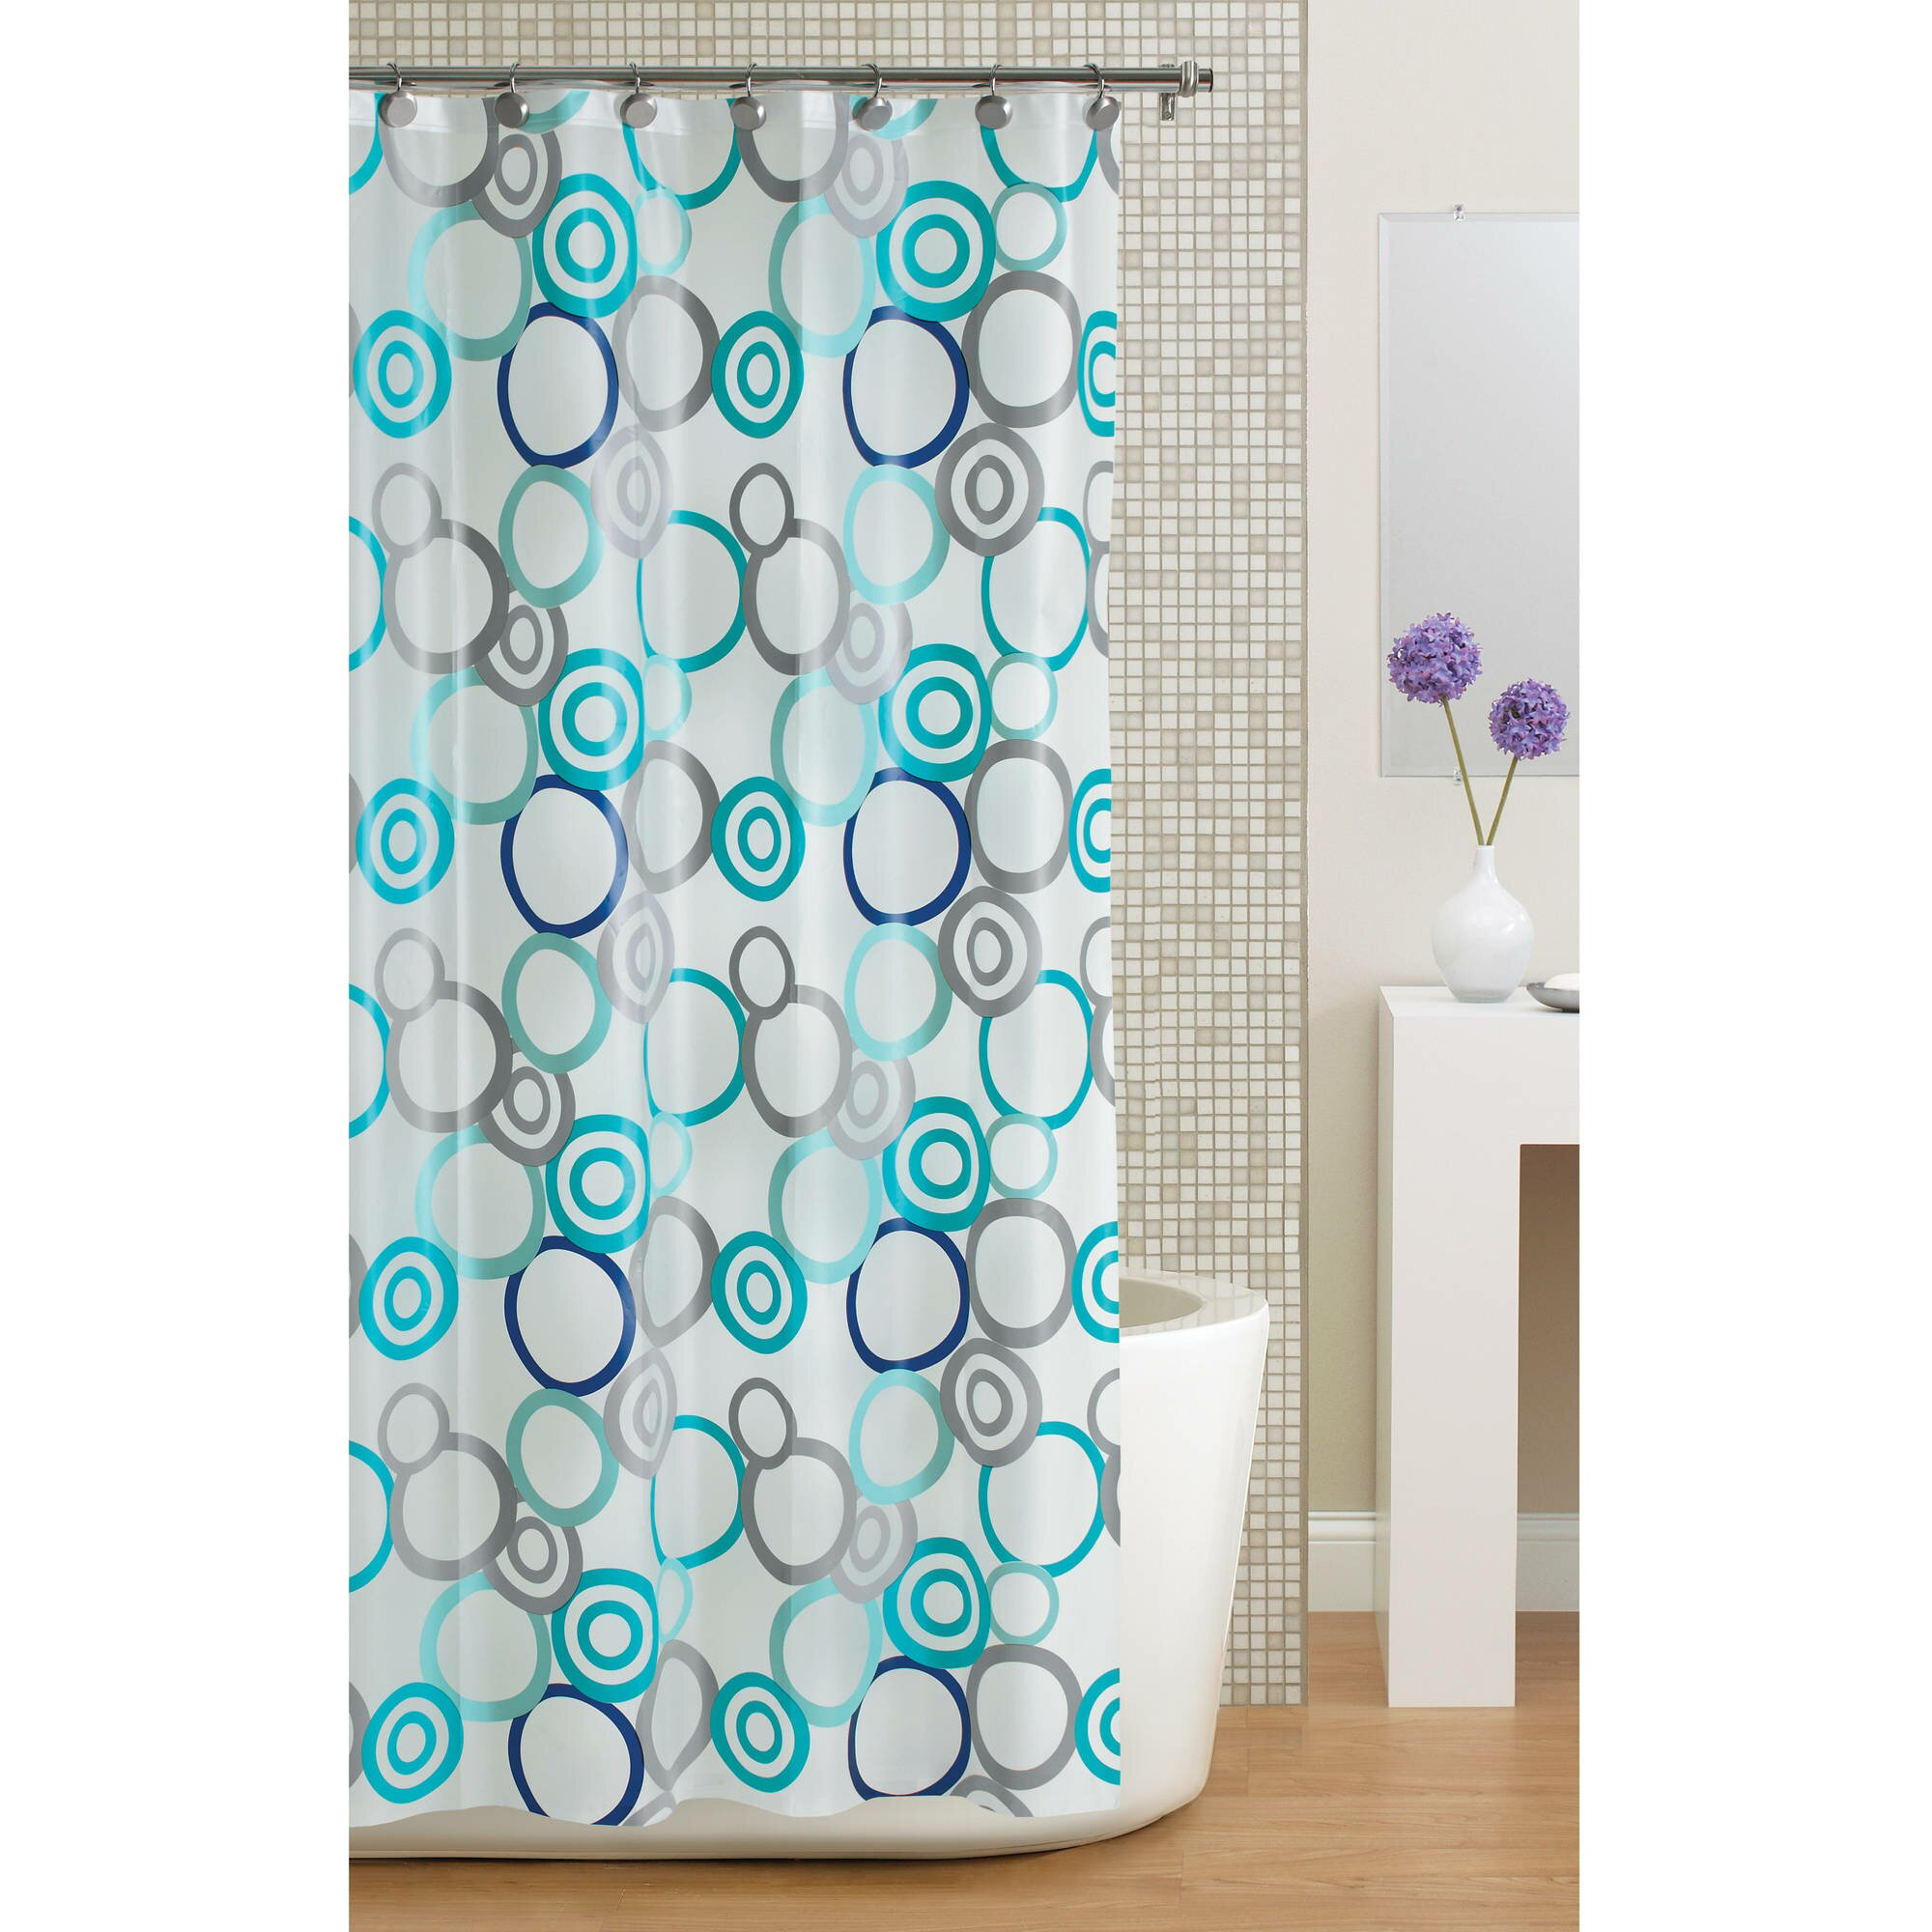 Zebra Print Bathroom Set Walmart | Walmart Shower Curtain | Walmart Shower Curtain Rods